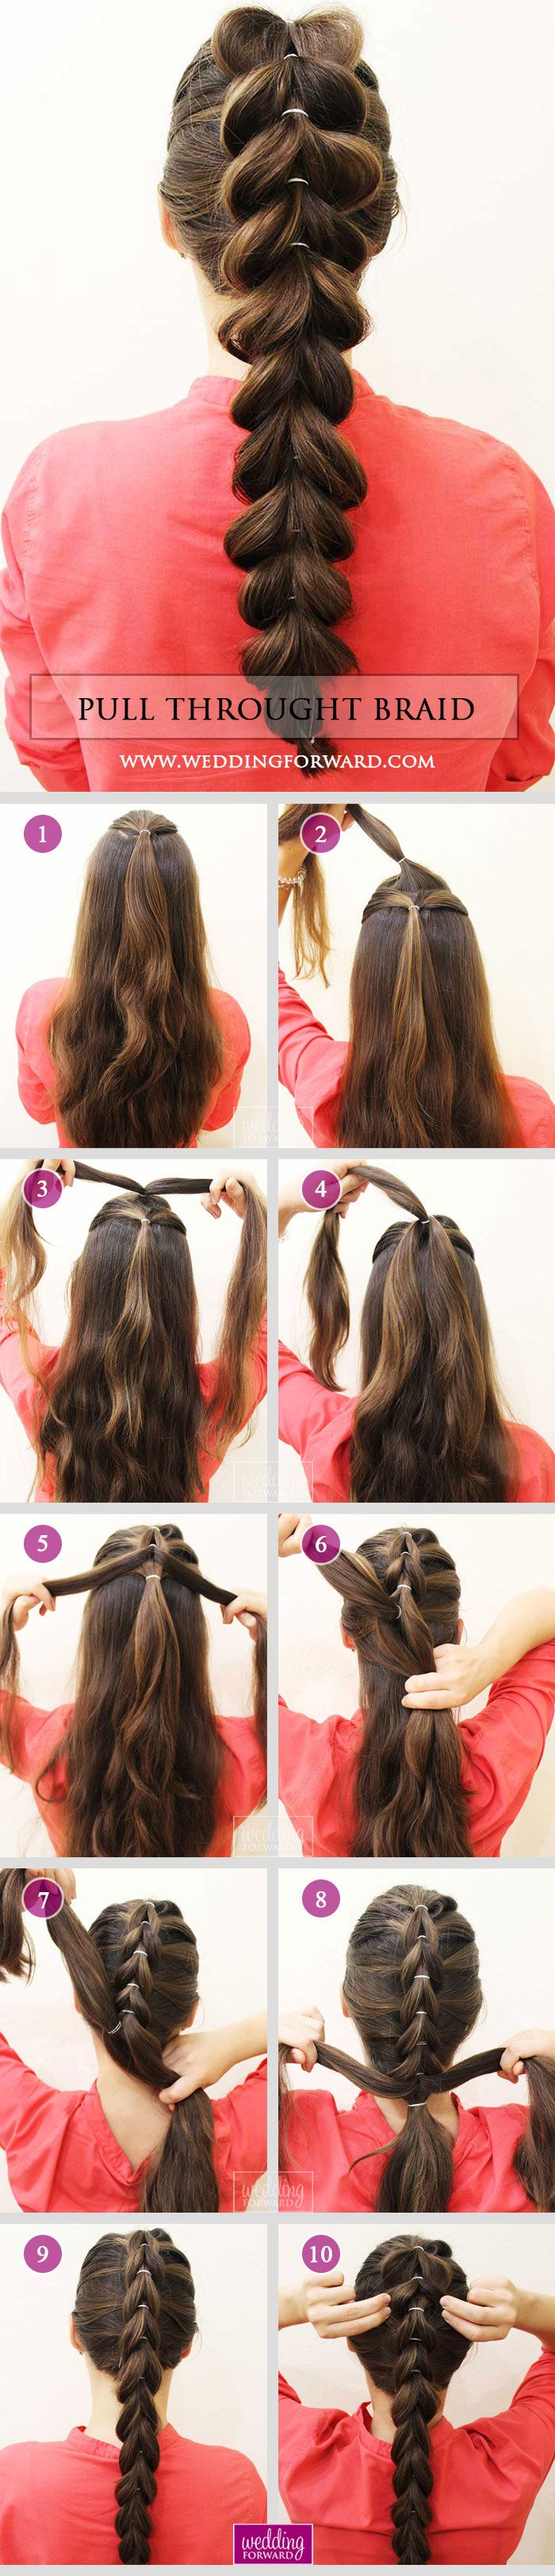 36 Braided Wedding Hair Ideas You Will Love❤ Stylish Pull Throught Braid at home is very easy! See at this tutorial and DIY step by step with us. viktoria_beaty via Instagram for WeddingForward. See more braided hairstyles here: www.weddingforward.com/  braided-wedding-hair/ #weddings #hairstyles